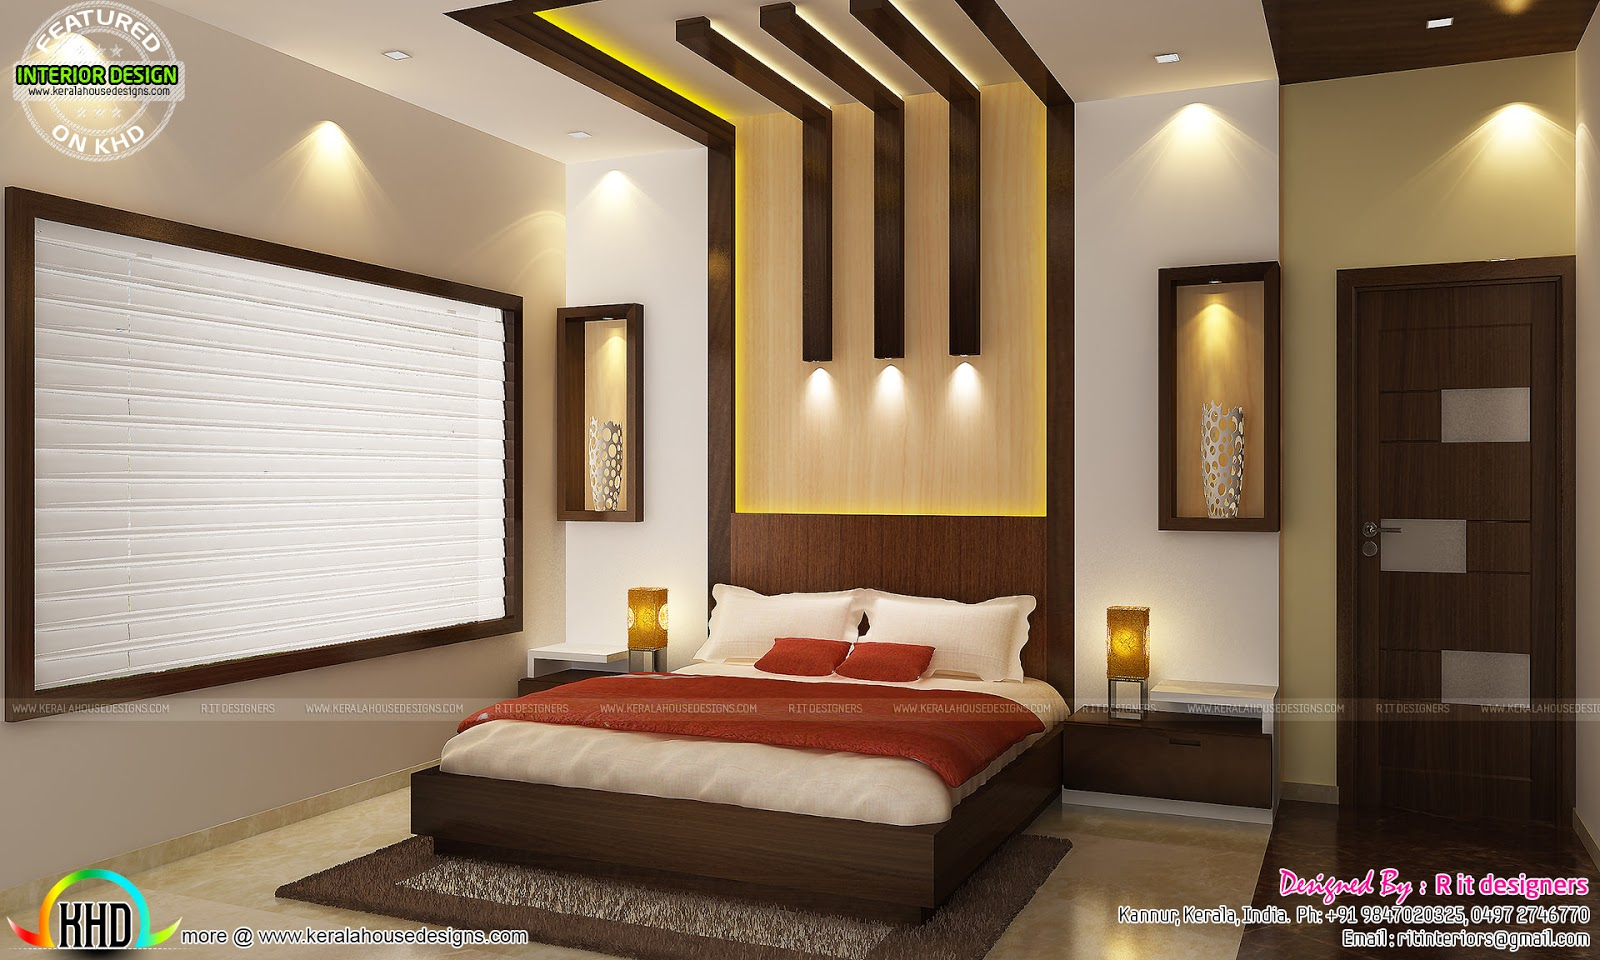 Kitchen living bedroom dining interior decor kerala for 1 bhk living room interior